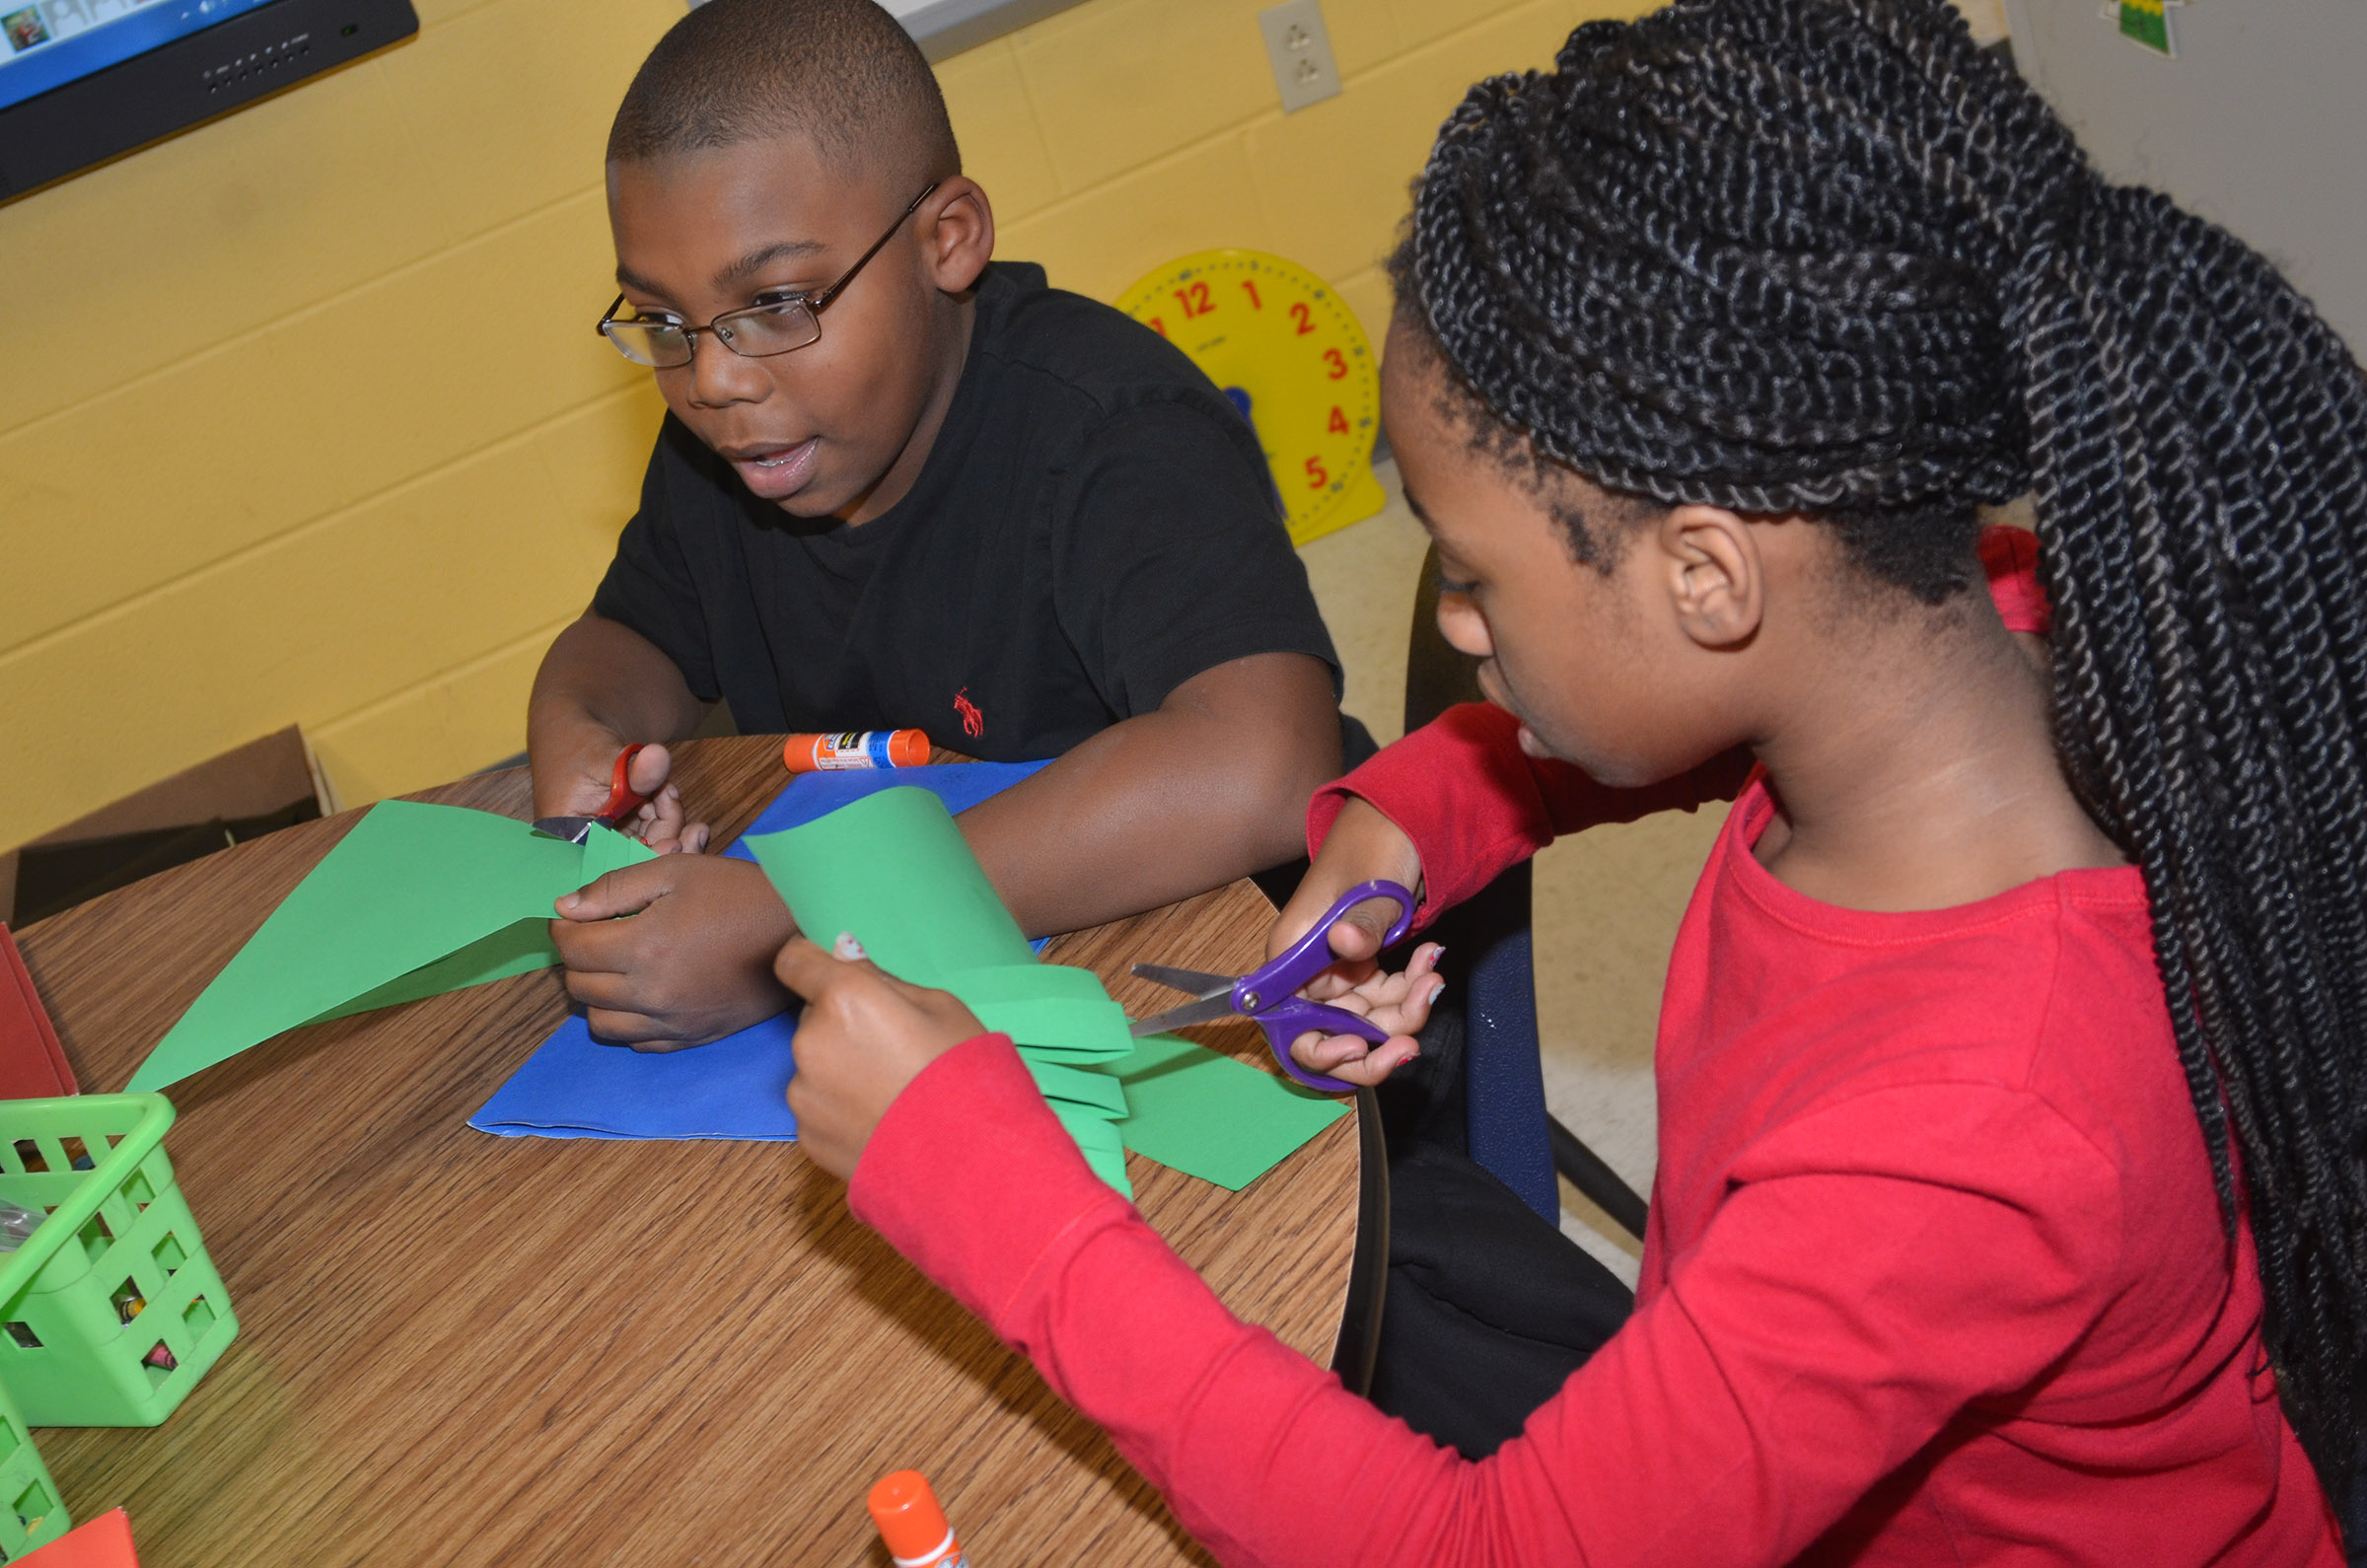 CES third-graders Austin Sloan, at left, and Tiffani Gaddie cut their paper into a Christmas tree.